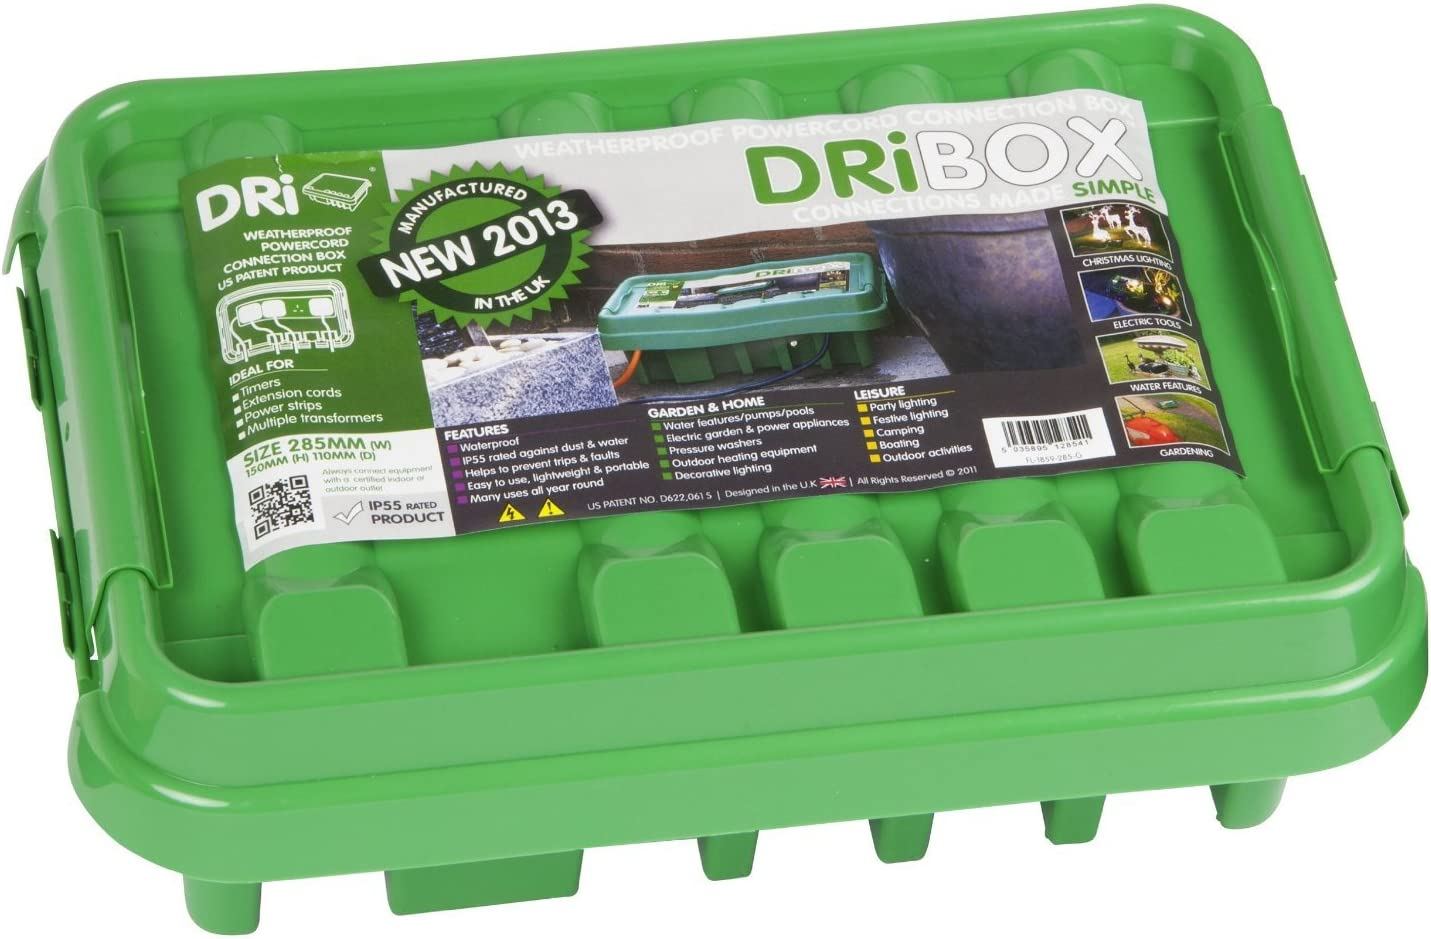 DriBox IP55 285mm Medium Weatherproof Box Black